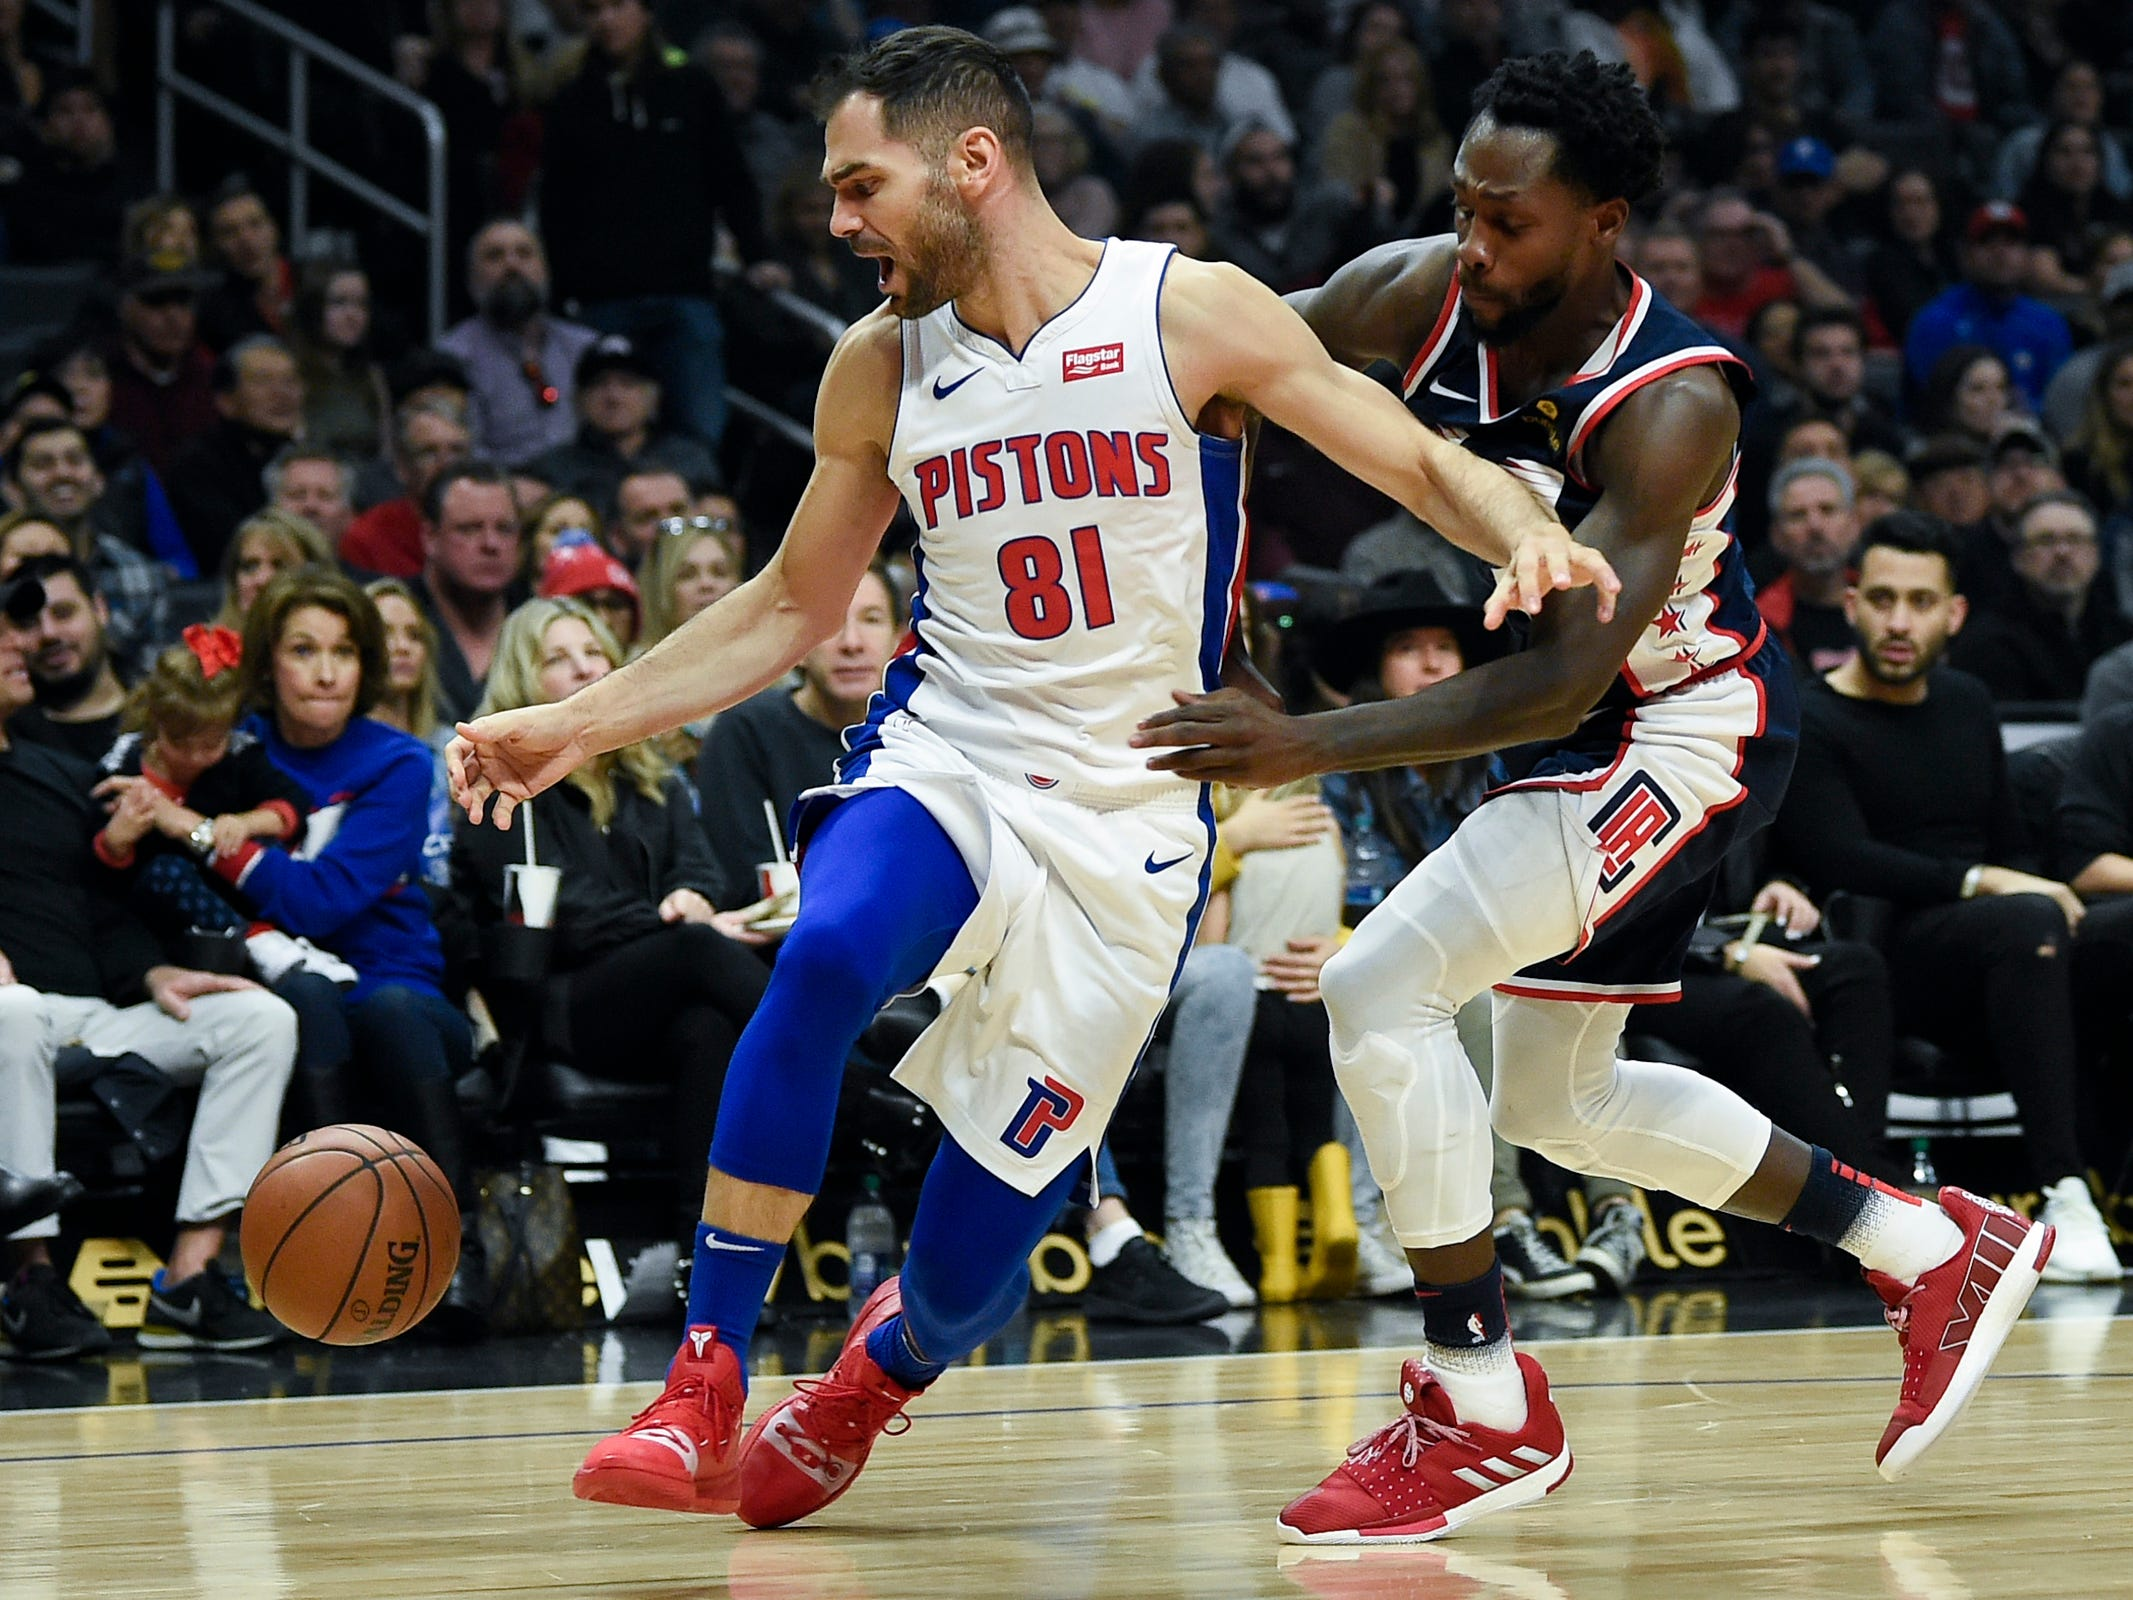 Pistons guard Jose Calderon loses control of the ball while Clippers guard Patrick Beverley defends during the first half on Jan. 12, 2019, in Los Angeles.